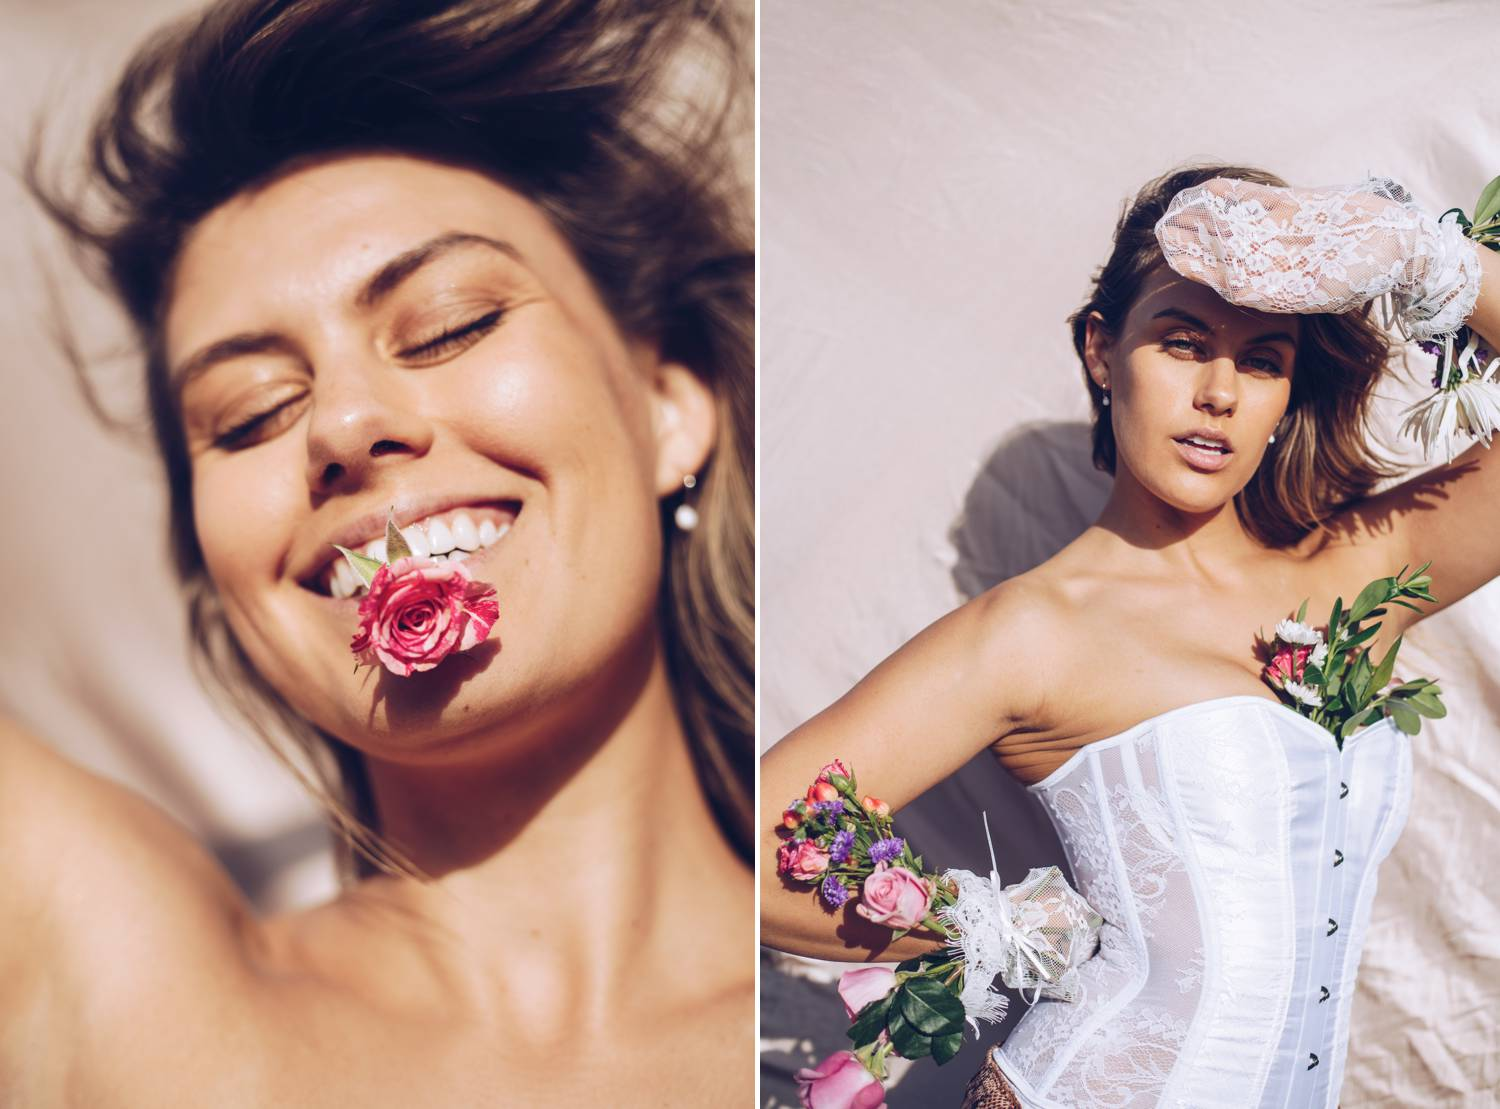 Full Sun Photographs with a Rose and White Corset